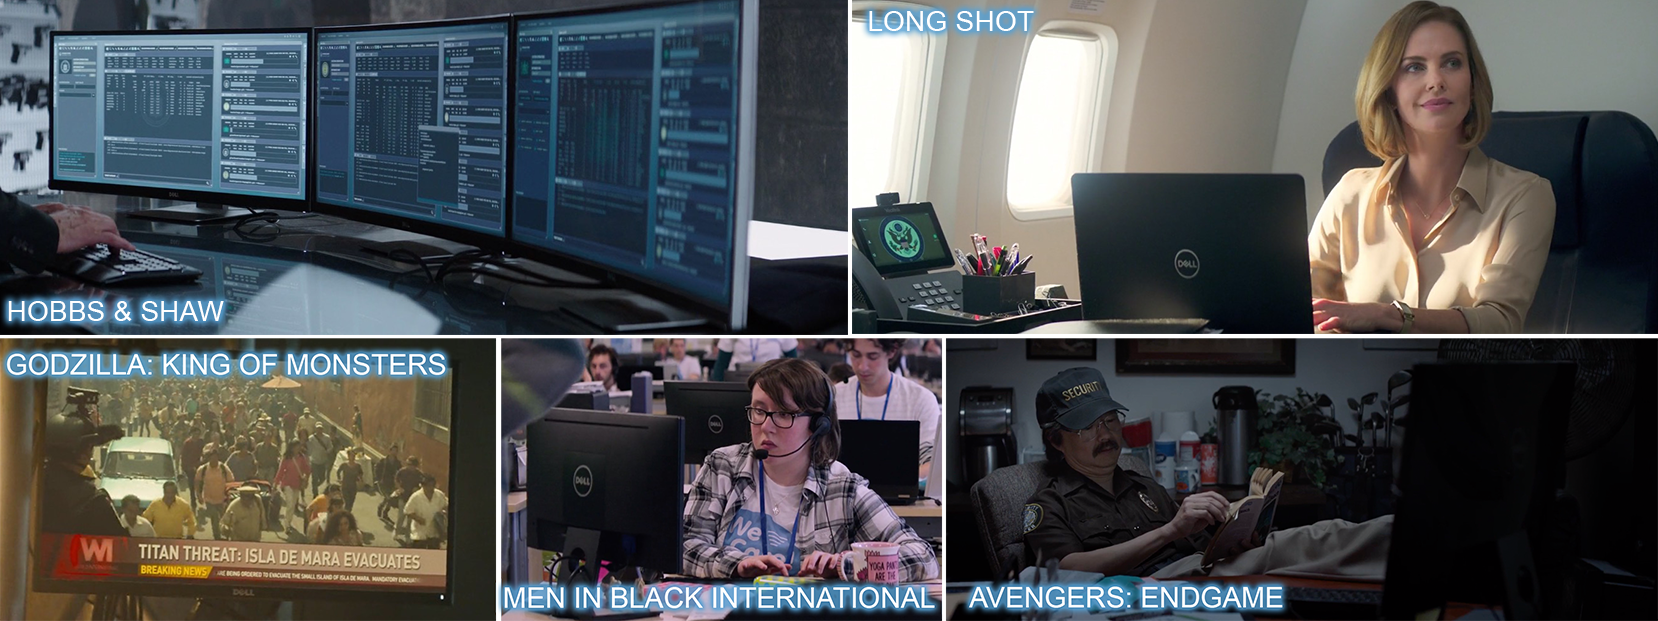 Dell product placement in HOBBS & SHAW, LONG SHOT, GODZILLA: KING OF MONSTERS, MEN IN BLACK INTERNATIONAL and AVENGERS: ENDGAME